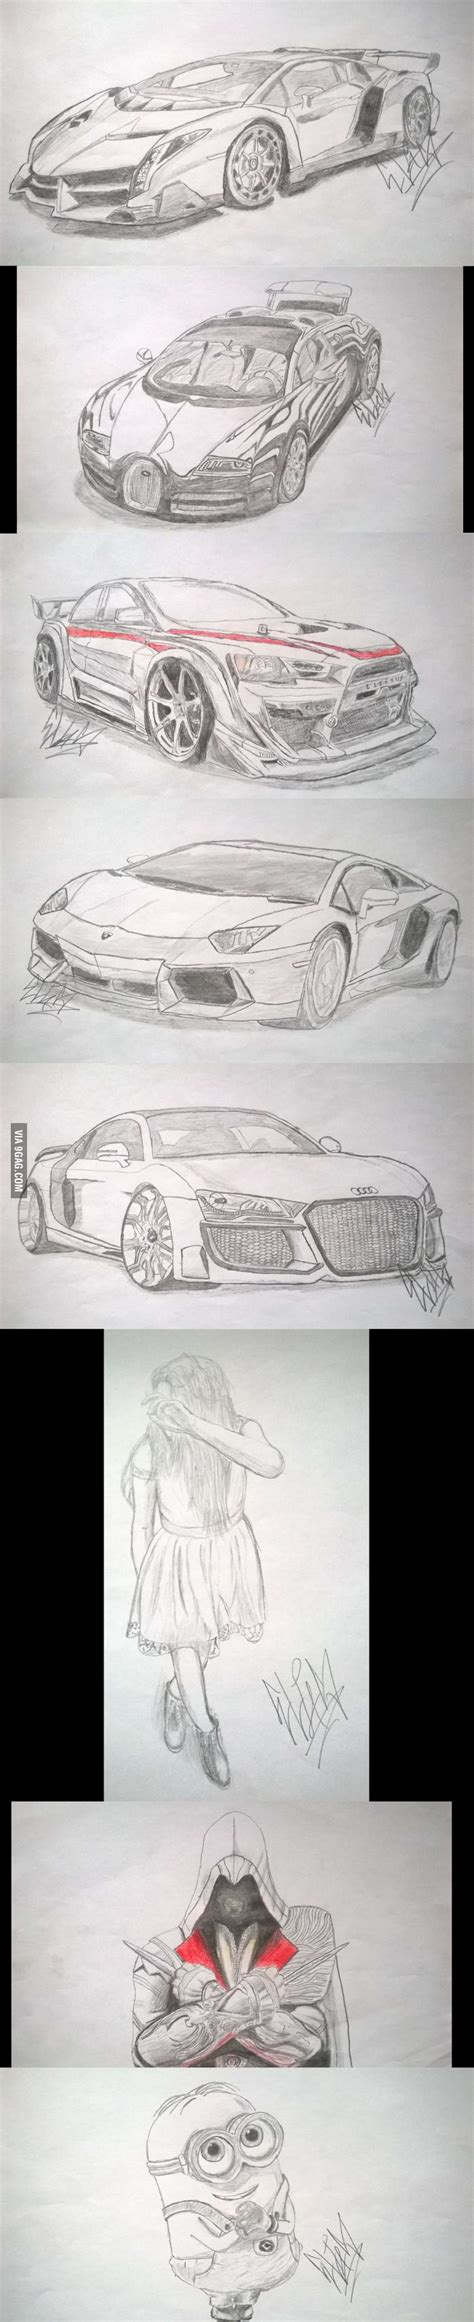 9gag Sketches by Just Some Drawings I Ve Made 9gag Pictures